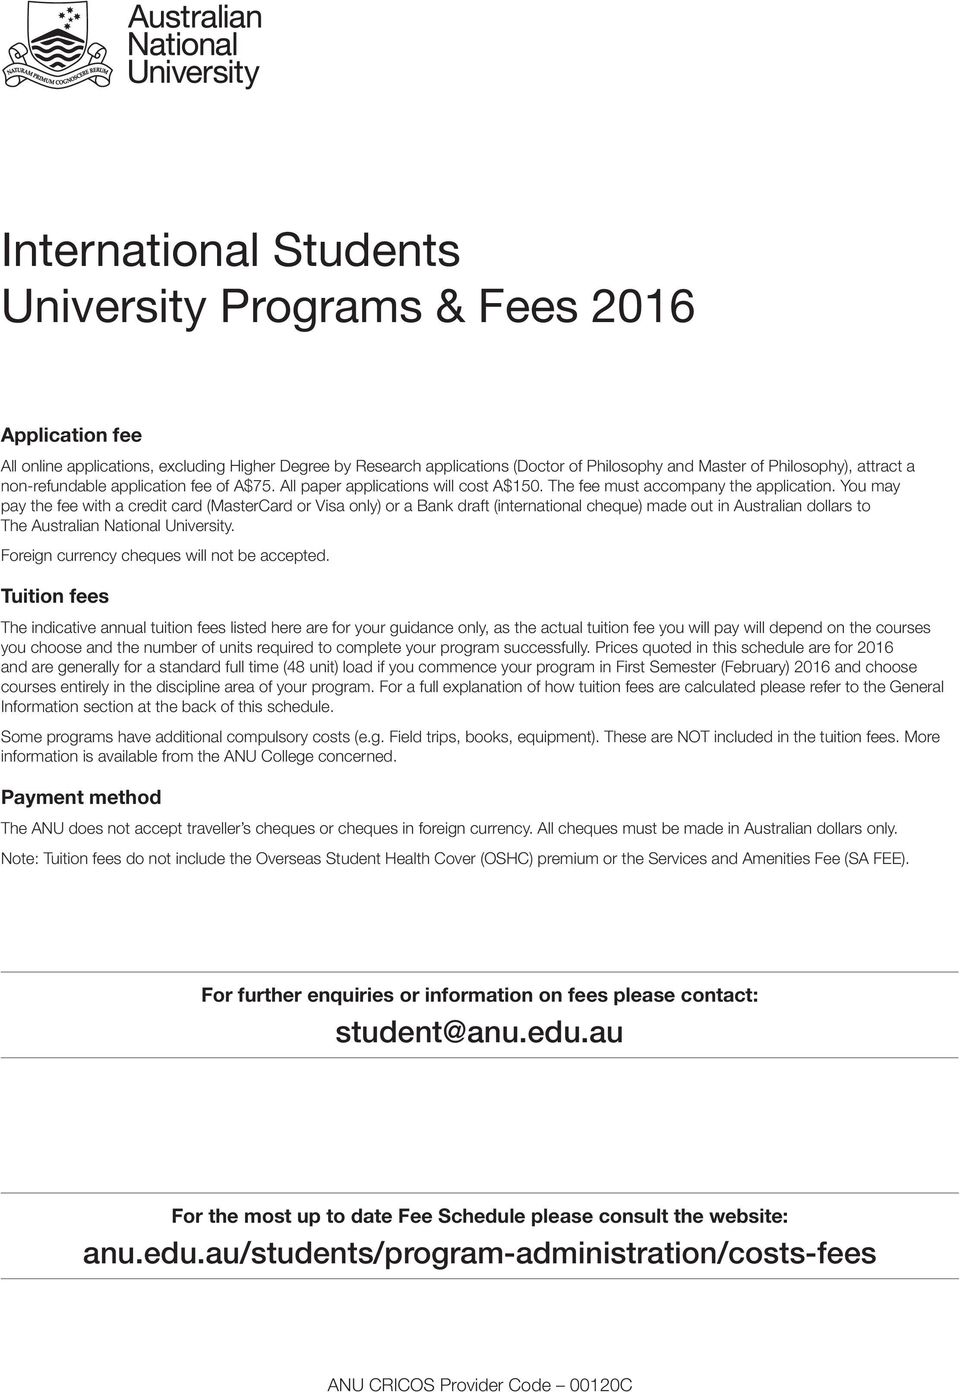 You may pay the fee with a credit card (MasterCard or Visa only) or a Bank draft (international cheque) made out in Australian dollars to The Australian National University.